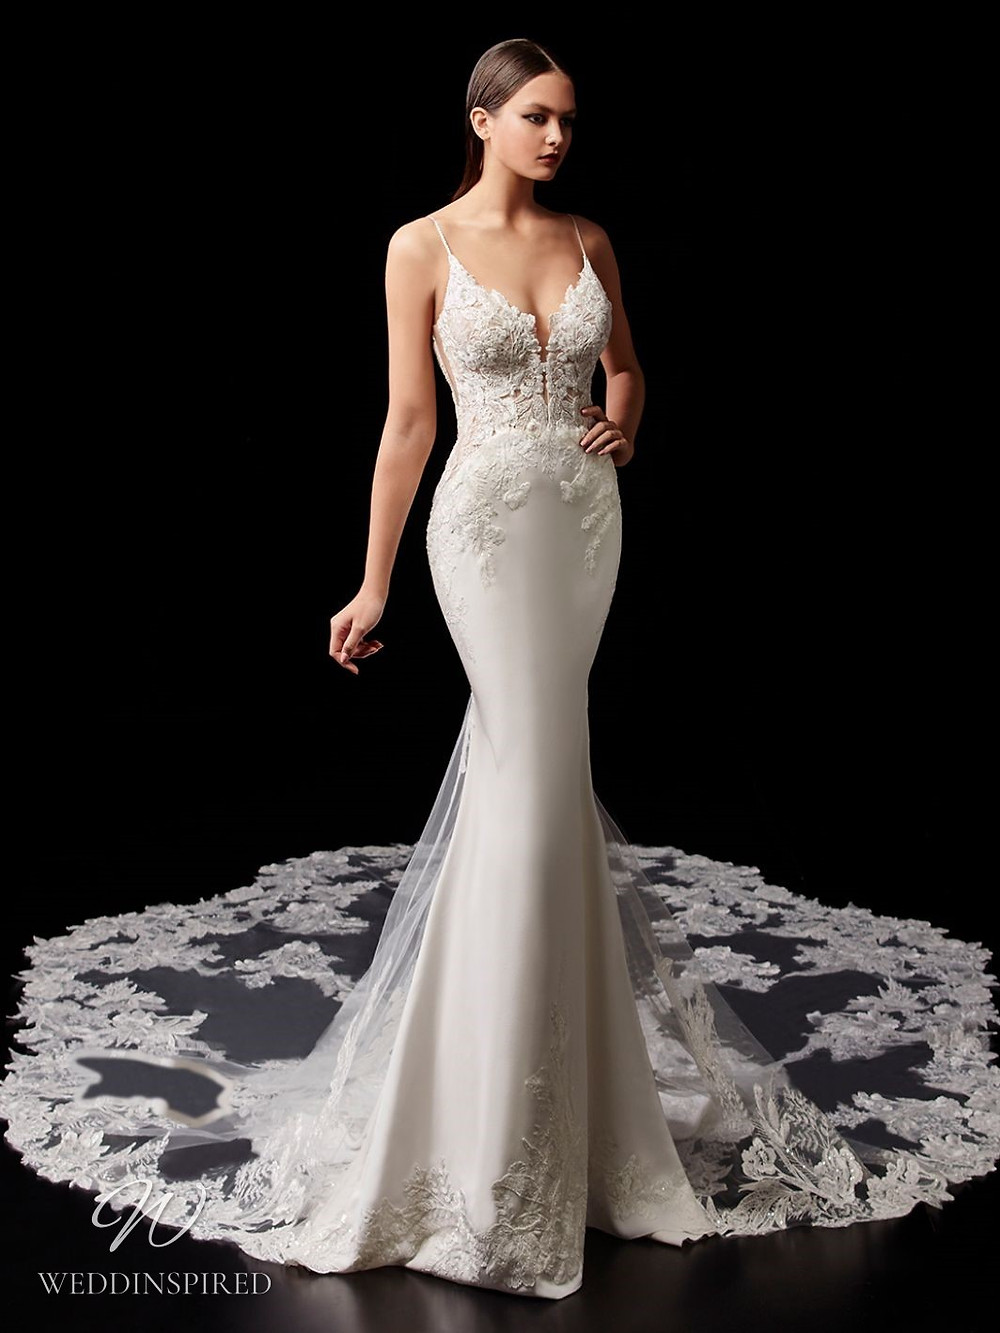 An Enzoani lace mermaid wedding dress with thin straps and an illusion train